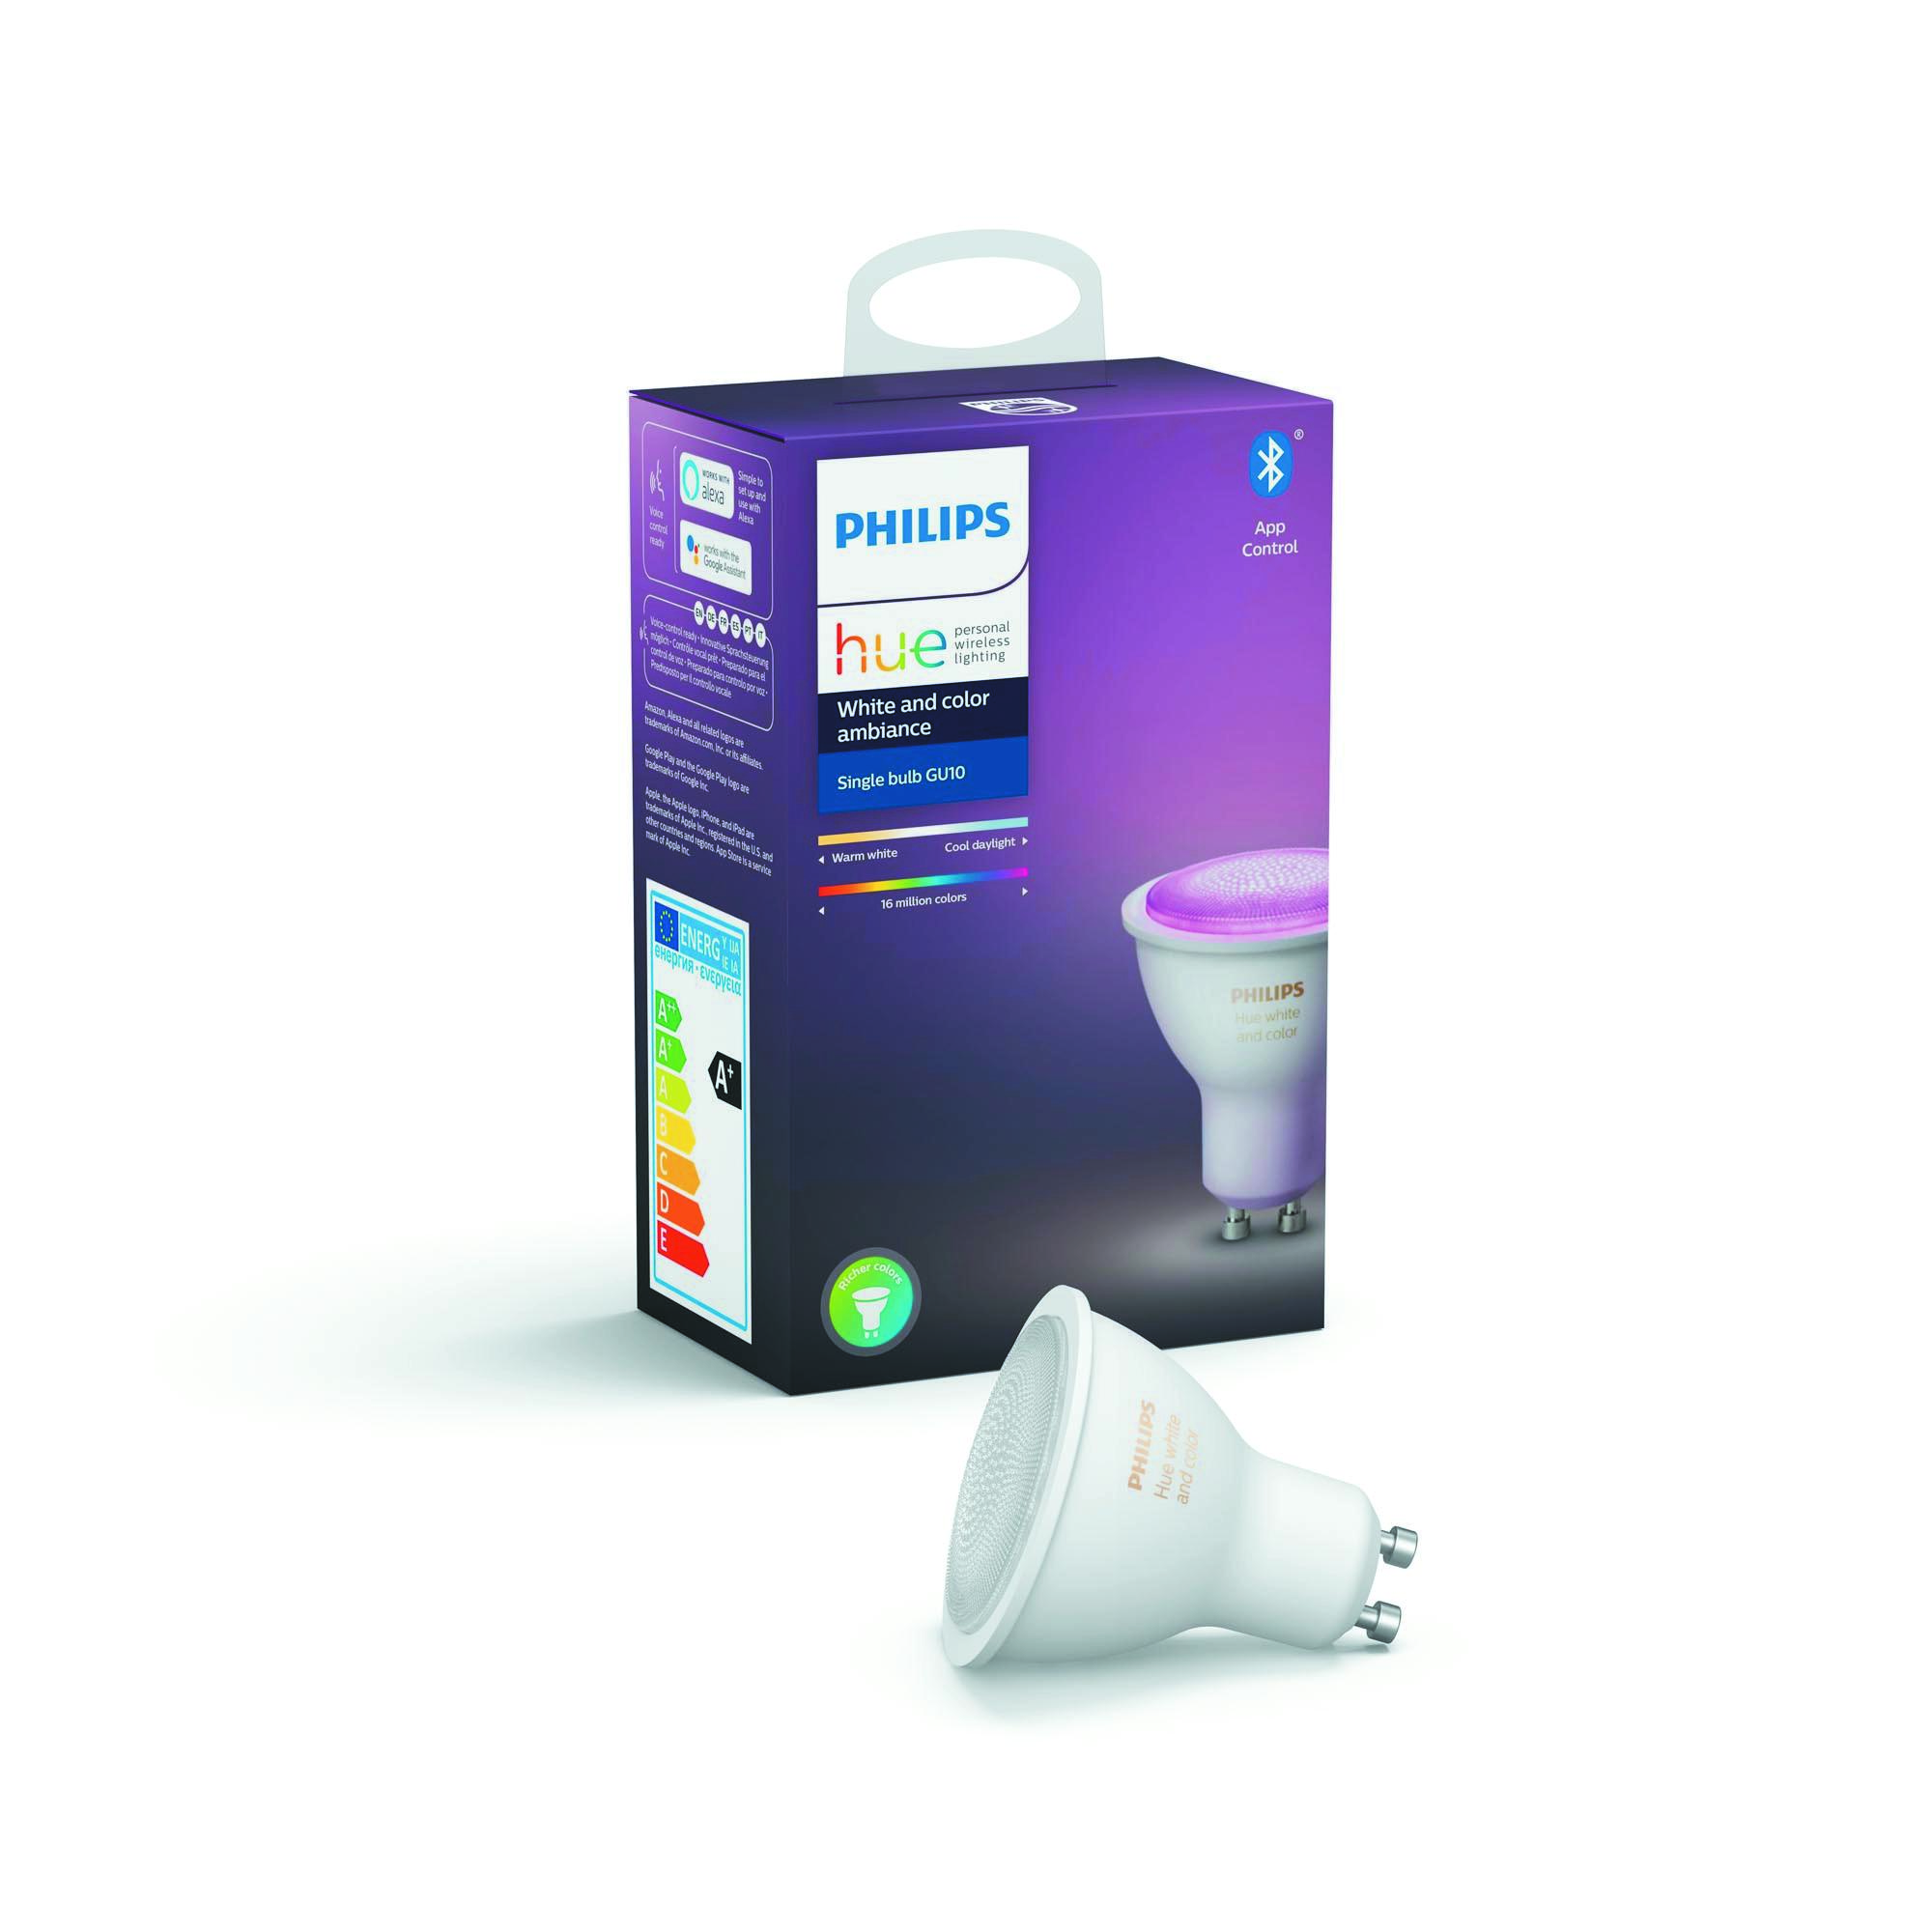 Philips Hue Bluetooth LED žárovka GU10 6,5W 250lm 2200-2700K, 16 mil.barev 8718699628659